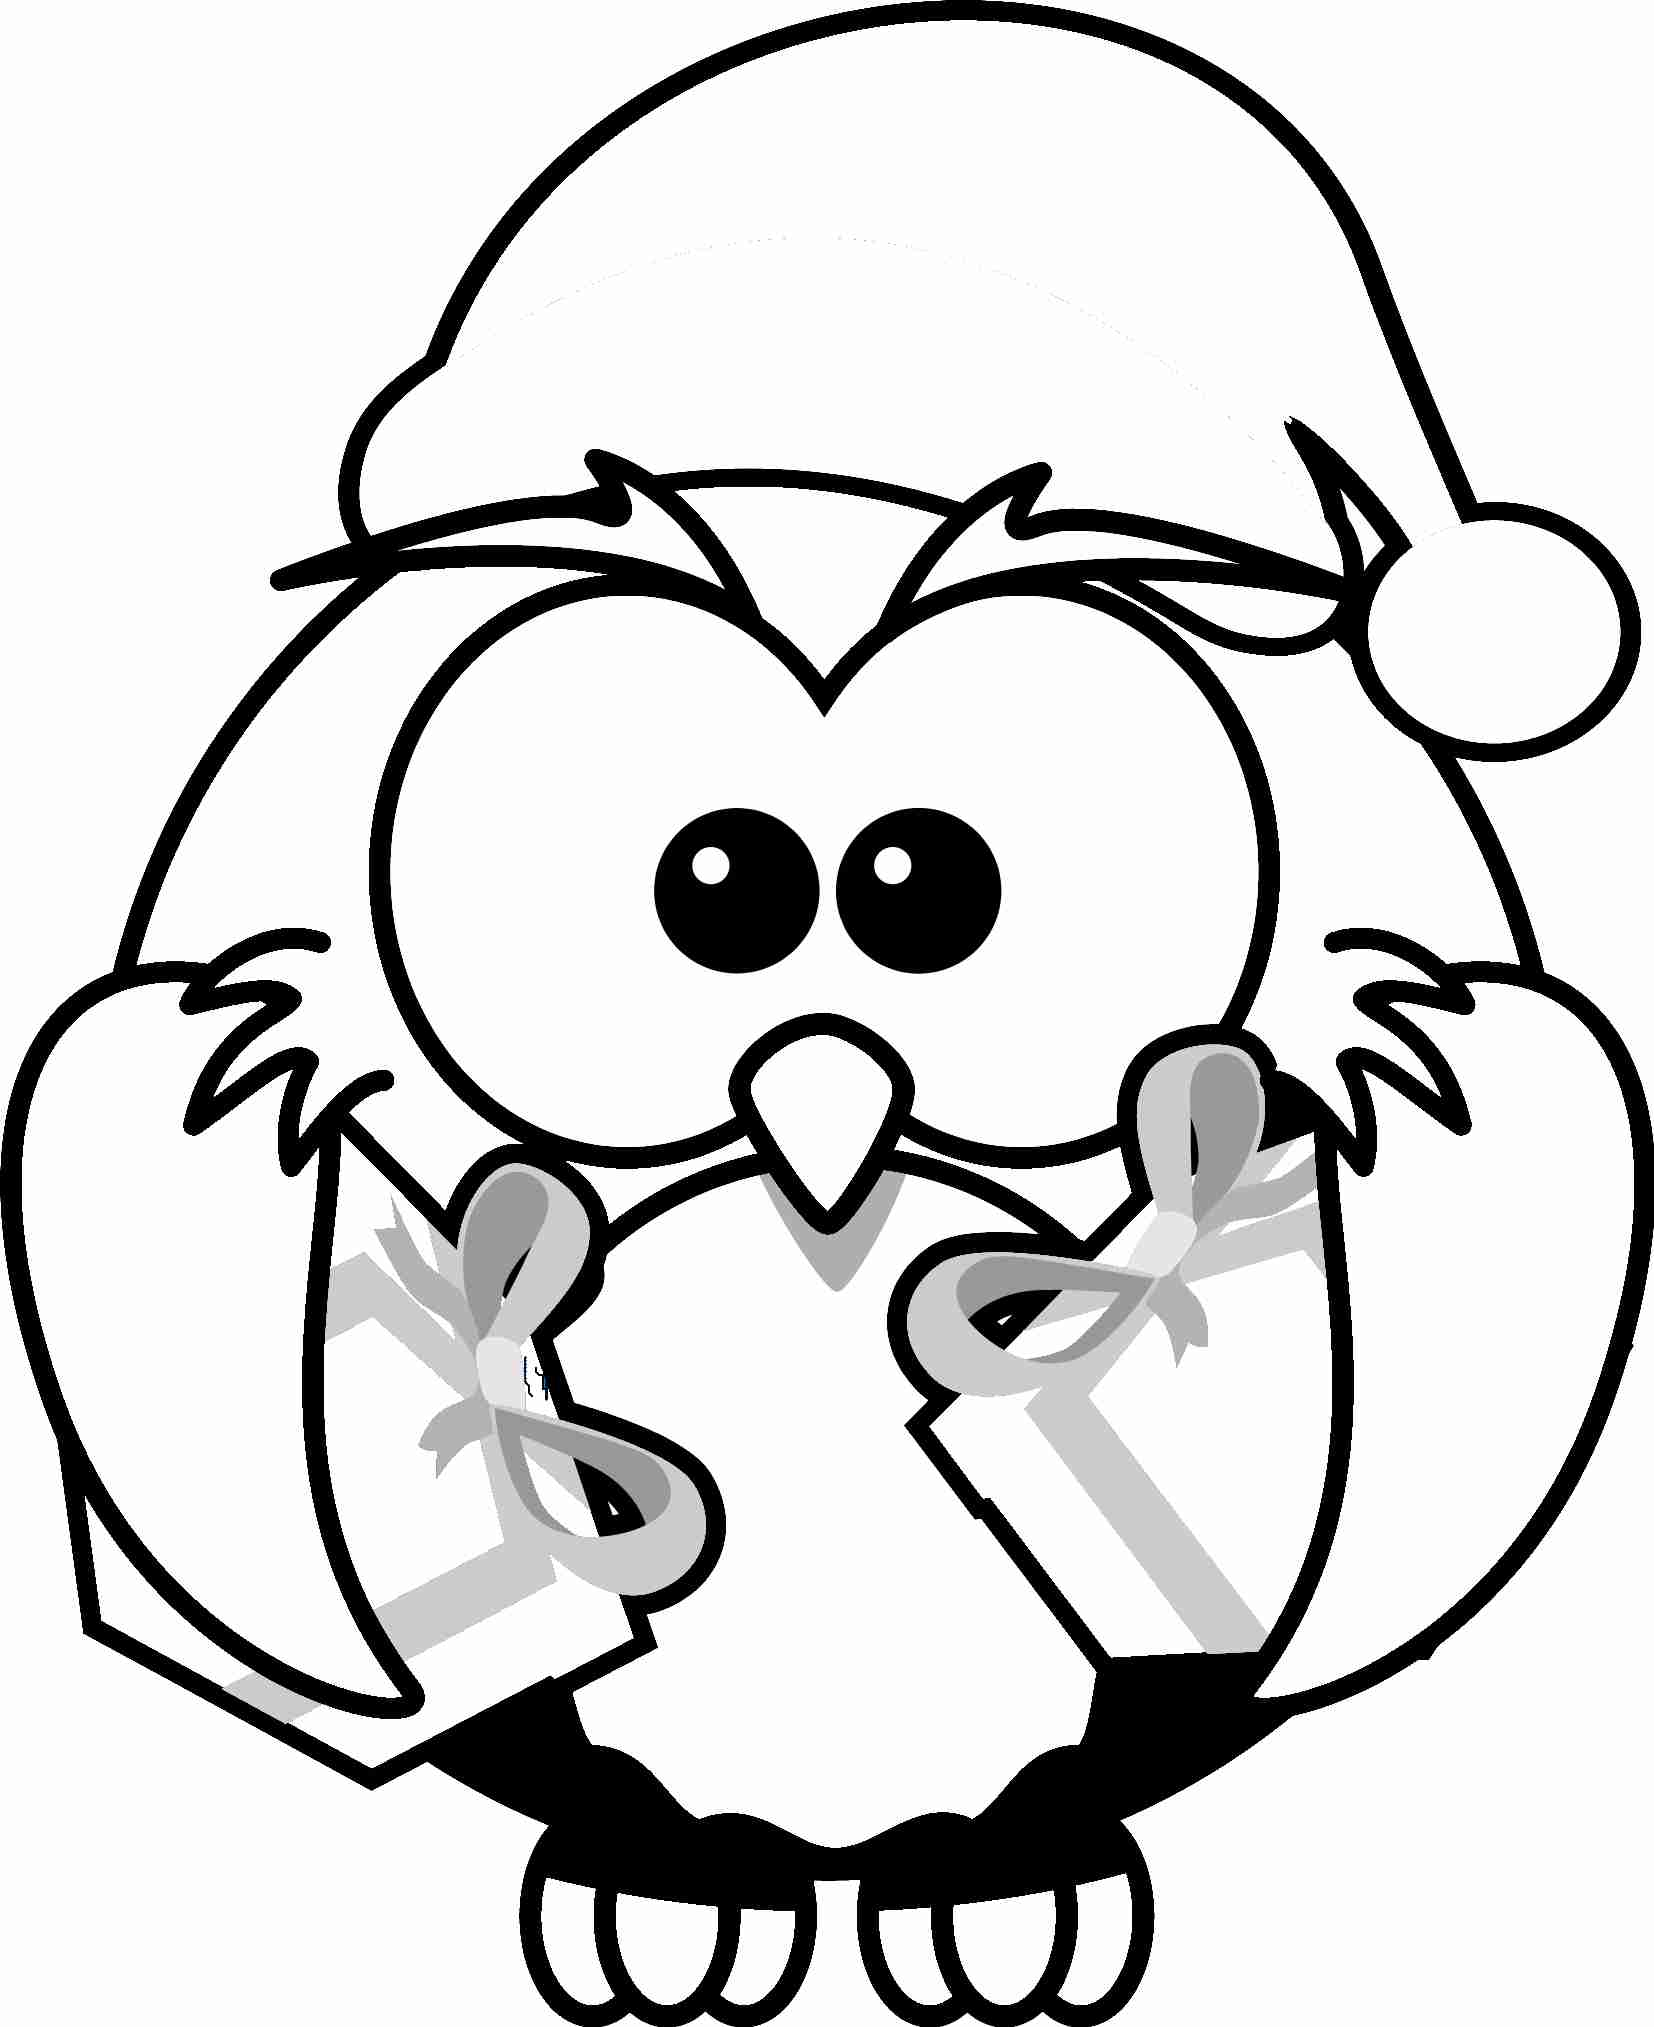 free printable coloring pages christmas free christmas coloring pages to print printable pages coloring free christmas